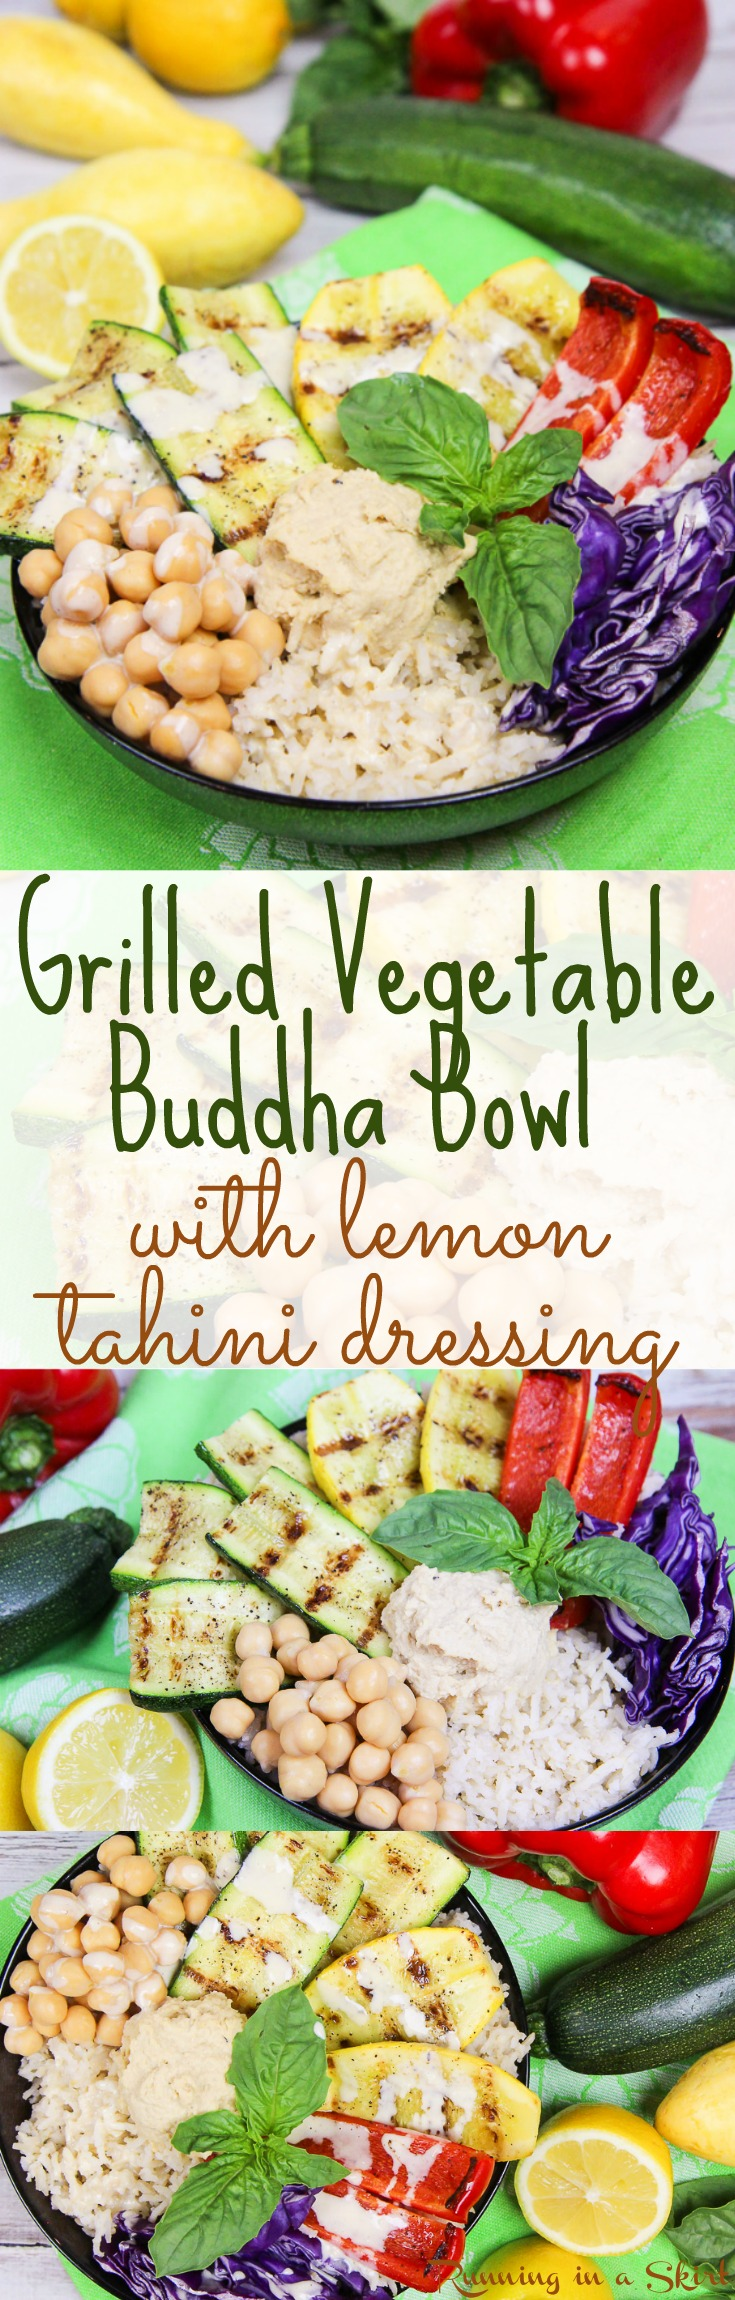 Vegan Grilled Vegetable Buddha Bowl with Homemade Lemon Tahini Dressing.  A clean eating, healthy and gluten free recipe that great for lunches or dinners. The perfect healthy meals idea with a tasty sauce. With brown rice, but you can sub any grain like quinoa.  Also vegetarian & dairy free. / Running in a Skirt via @juliewunder